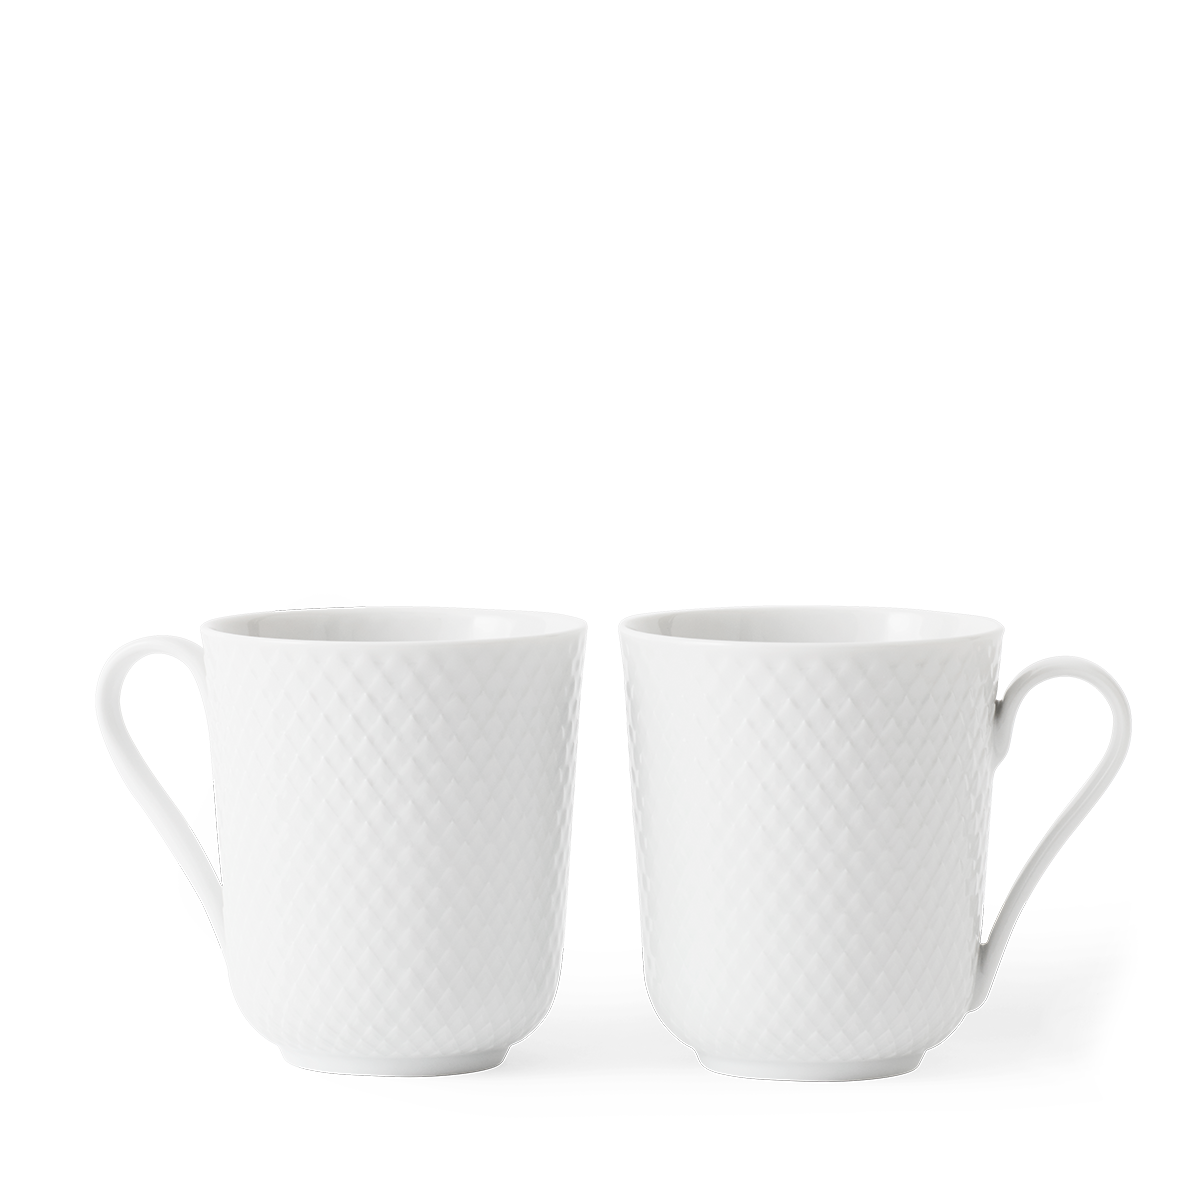 White Set Rhombe Cup With Handle Handmade Porcelain